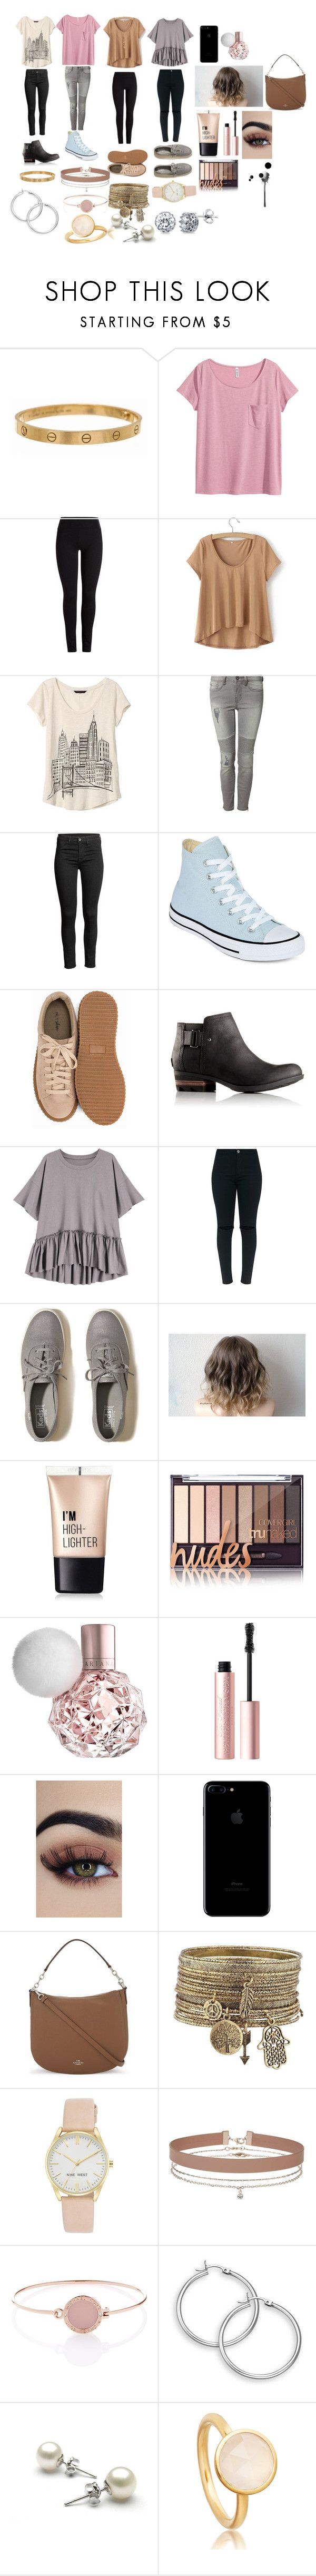 """4 day look book."" by heavensummerjimenenz ❤ liked on Polyvore featuring beauty, Cartier, H&M, Banana Republic, Devoted, Converse, Nly Shoes, SOREL, Hollister Co. and Charlotte Russe"